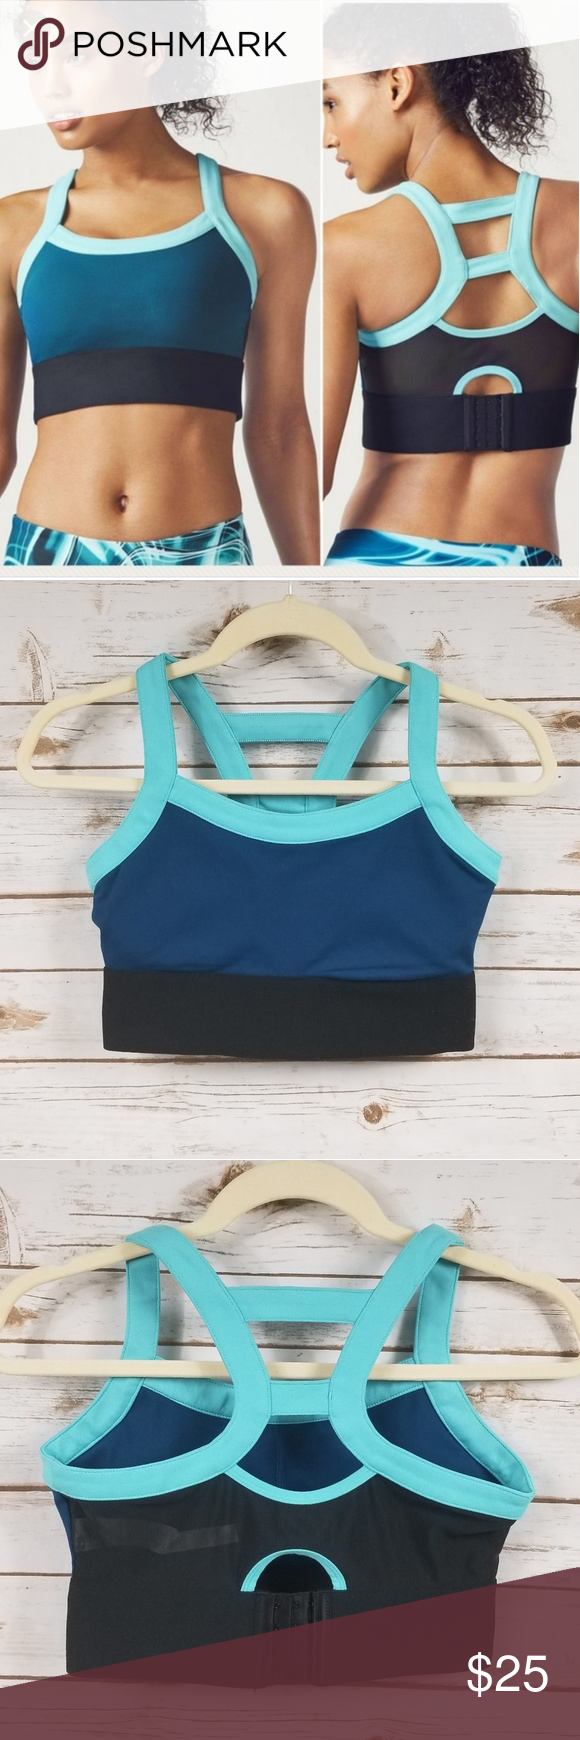 4c5916c2d6a94 Fabletics Robyn colorblock high support sports bra Fabletics Robyn teal and  black colorblock high support sports